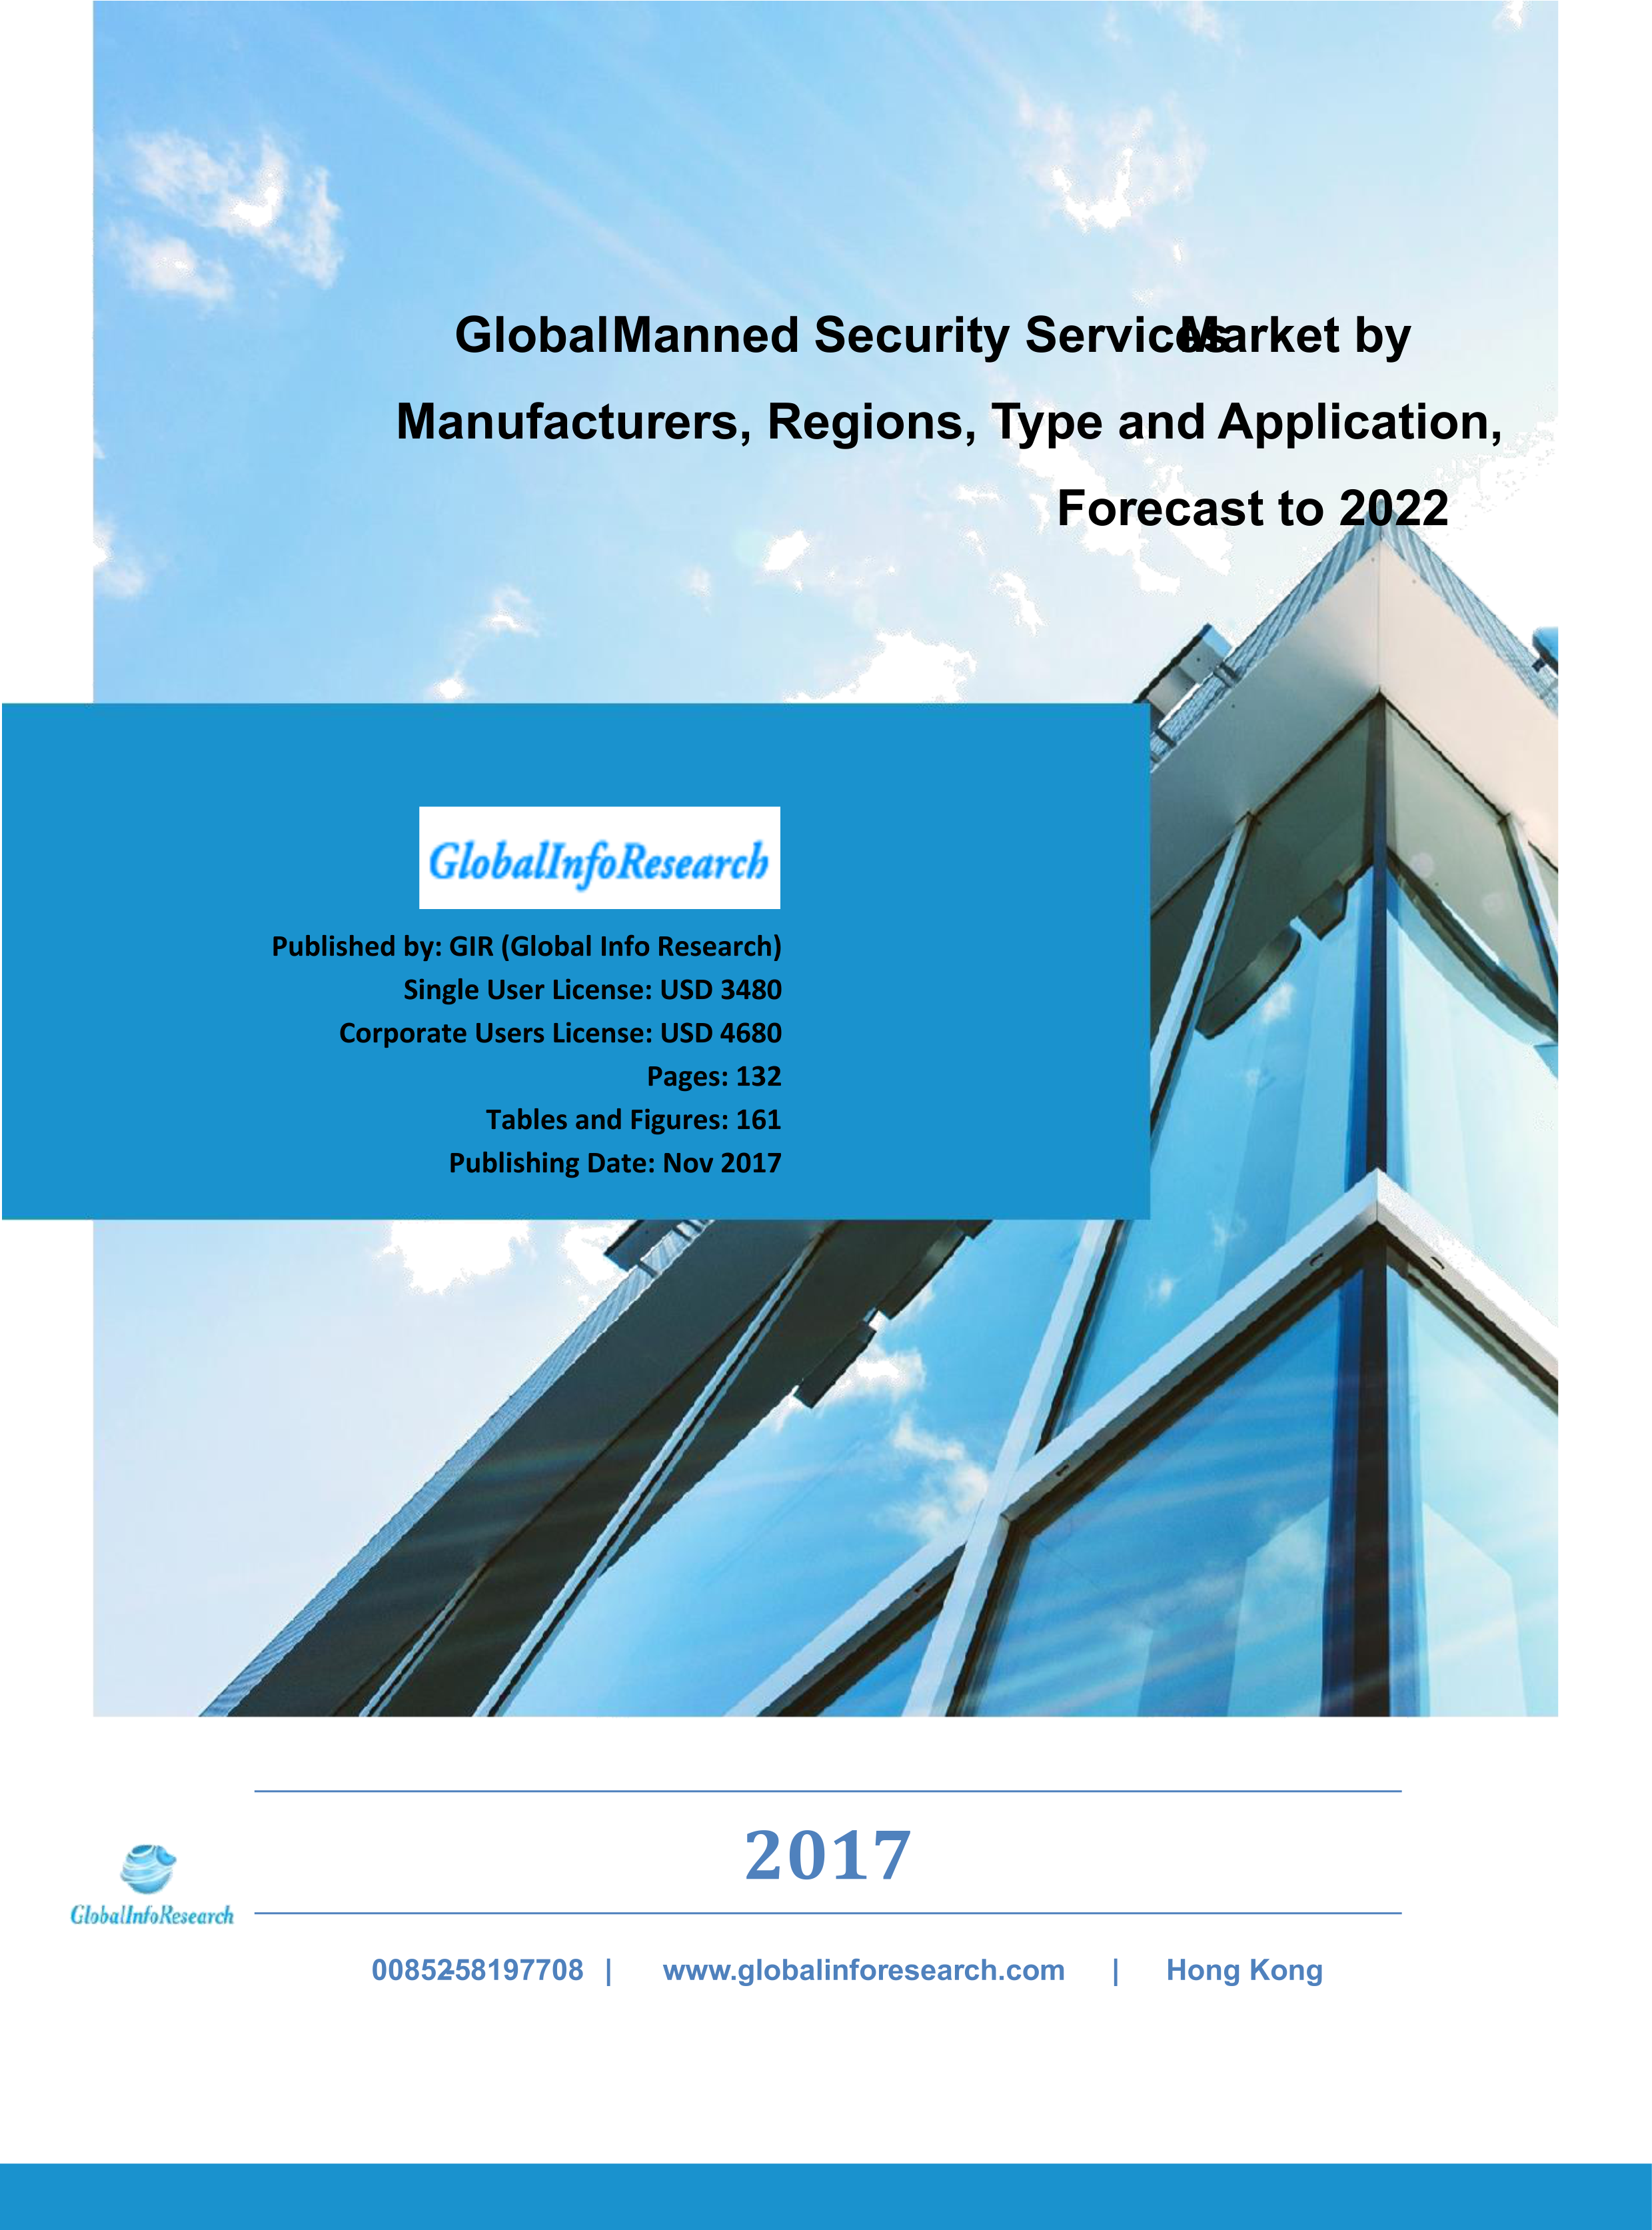 Global Manned Security Services Market by Manufacturers, Regions, Type and Application Forecast to 2022